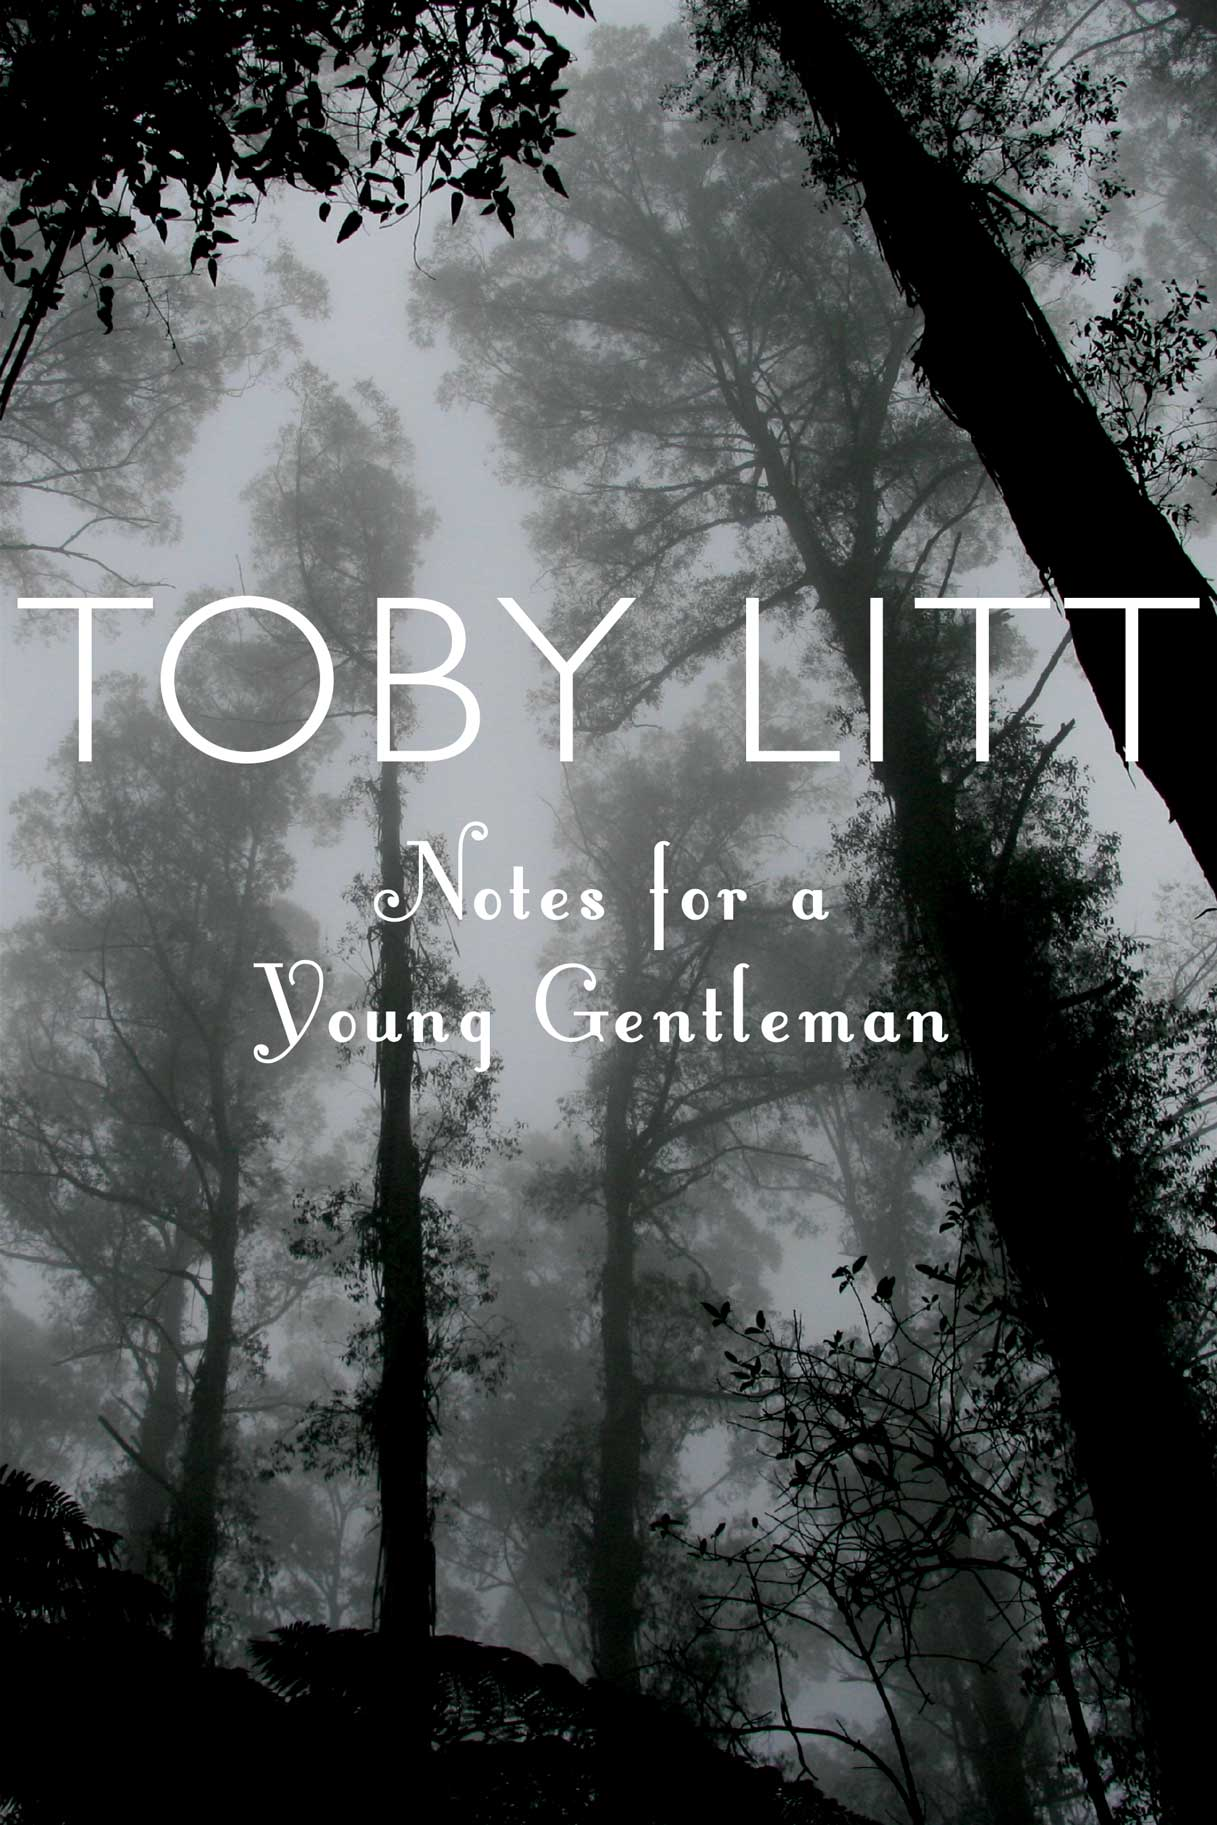 Notes for a Young Gentleman by Toby Litt | Seagull Books